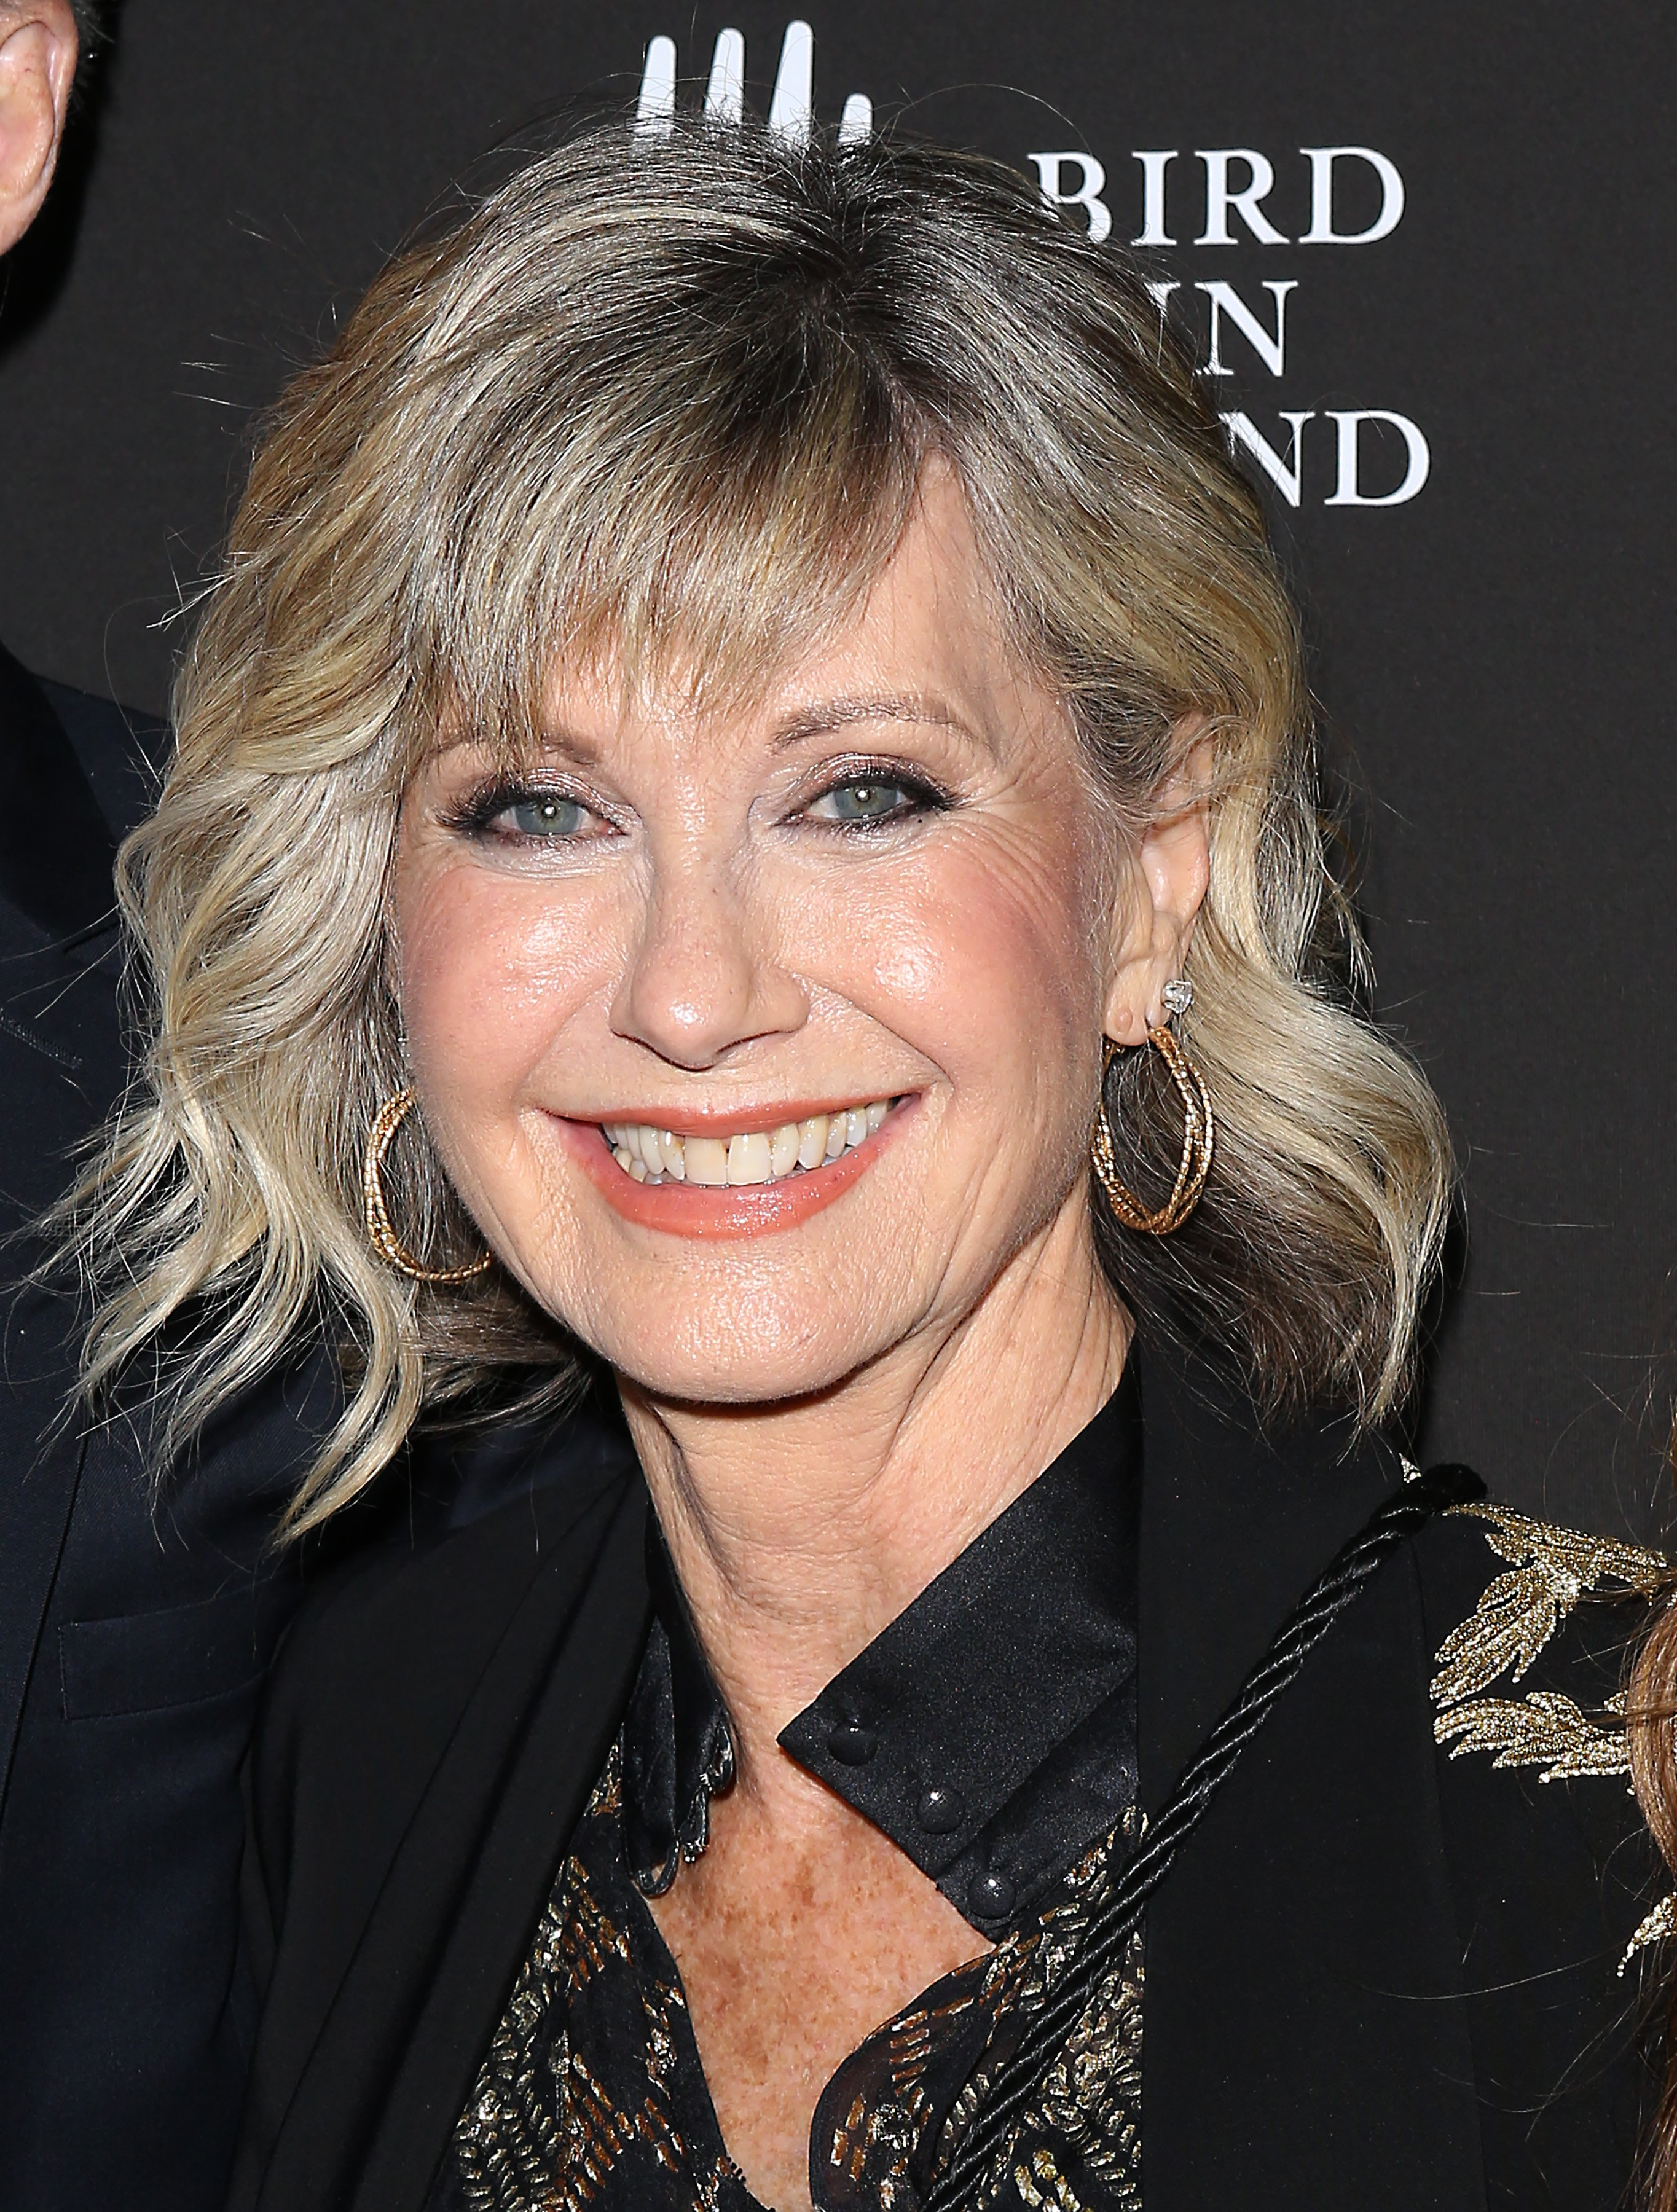 Olivia Newton-John attends the G'Day USA 2020 held at Beverly Wilshire, A Four Seasons Hotel on January 25, 2020 | Photo: Getty Images